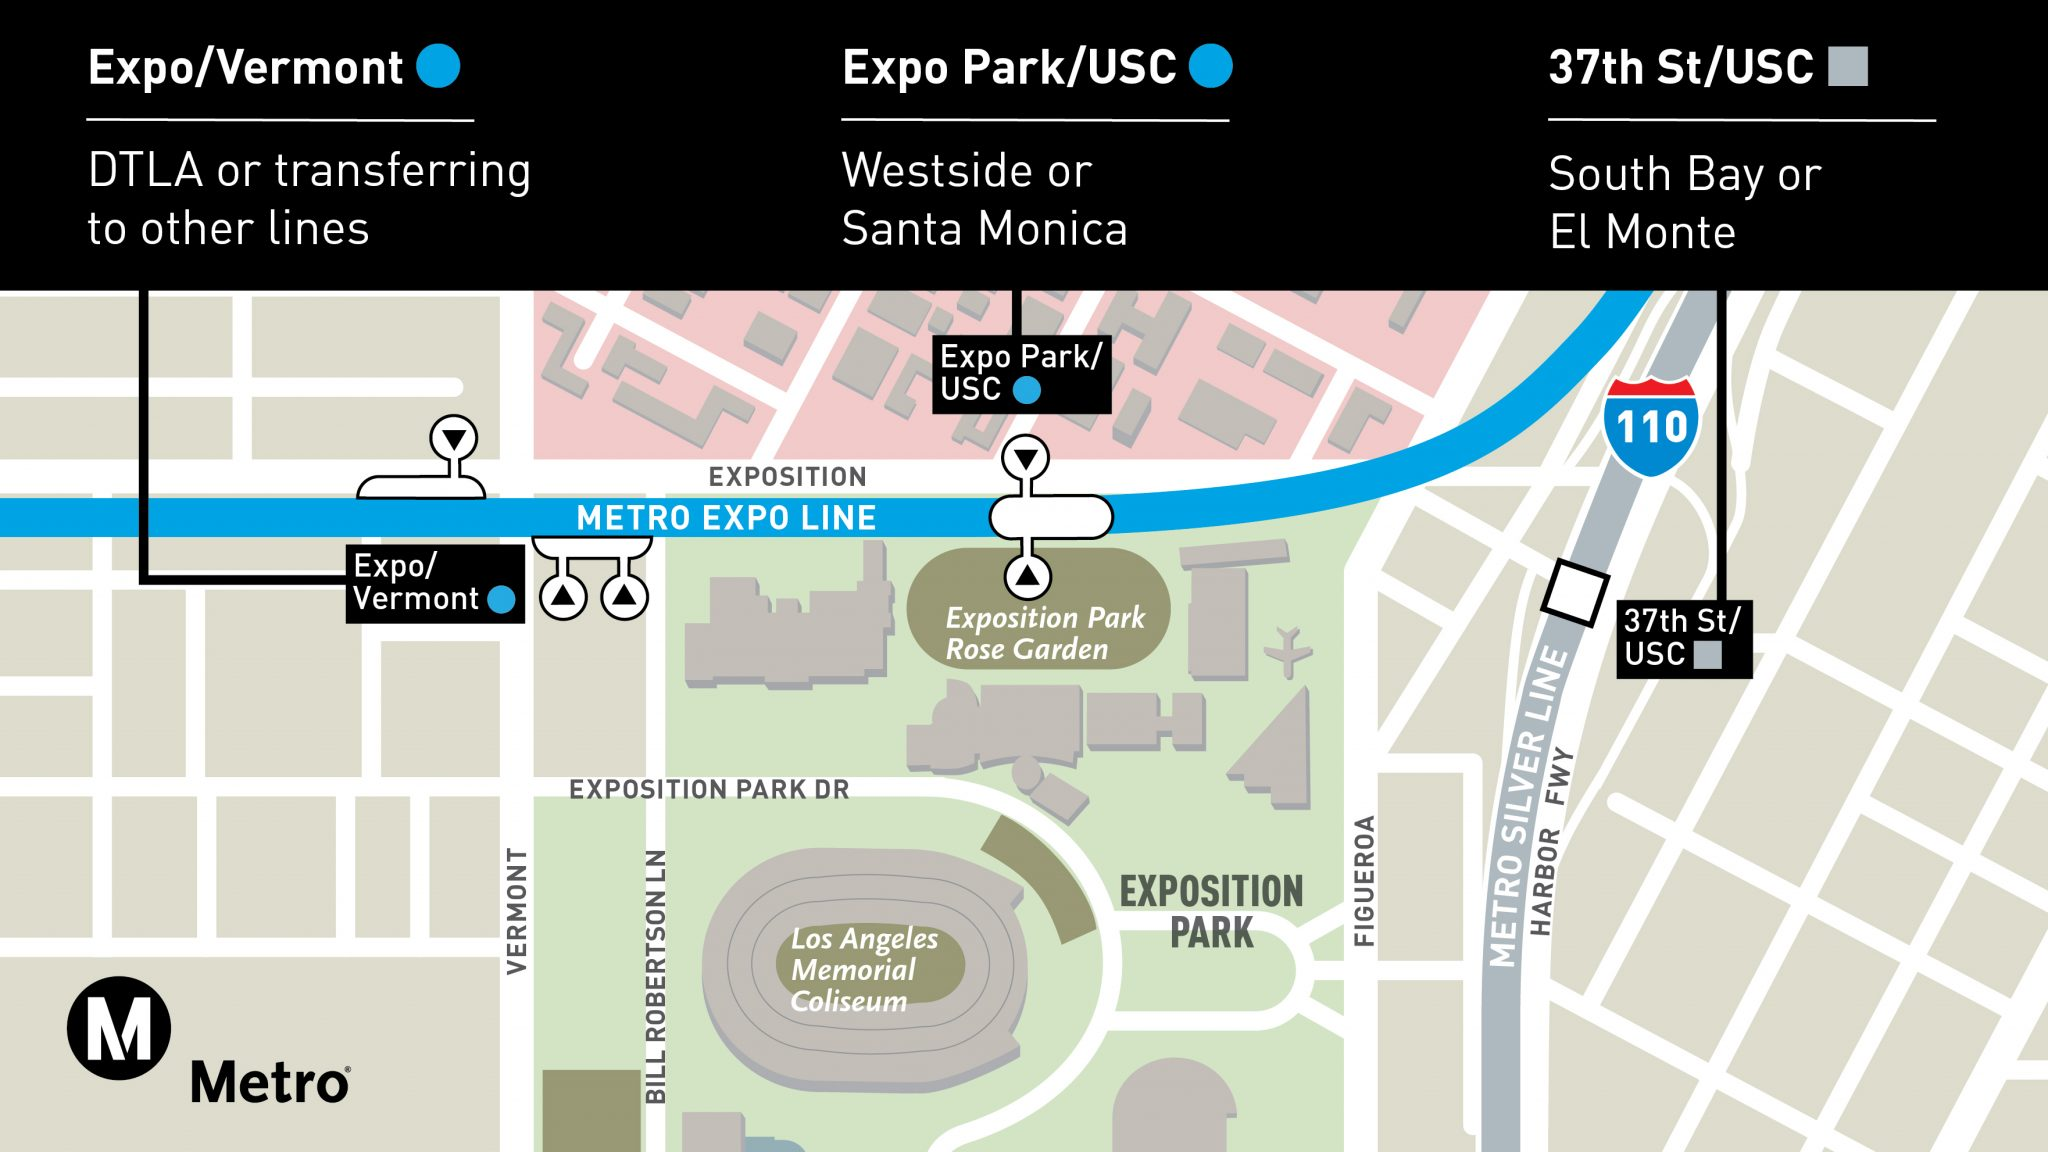 If going to Rams game Saay, here's how to Go Metro - The Source on packers parking map, football parking map, rockets parking map, rays parking map, cowboys parking map, atlanta parking map, nationals parking map, redskins parking map, san francisco parking map, bulls parking map, new england patriots parking map, jets parking map, michigan parking map, dodgers parking map, bills parking map, browns parking map, oakland parking map, cubs parking map, penguins parking map, pittsburgh parking map,